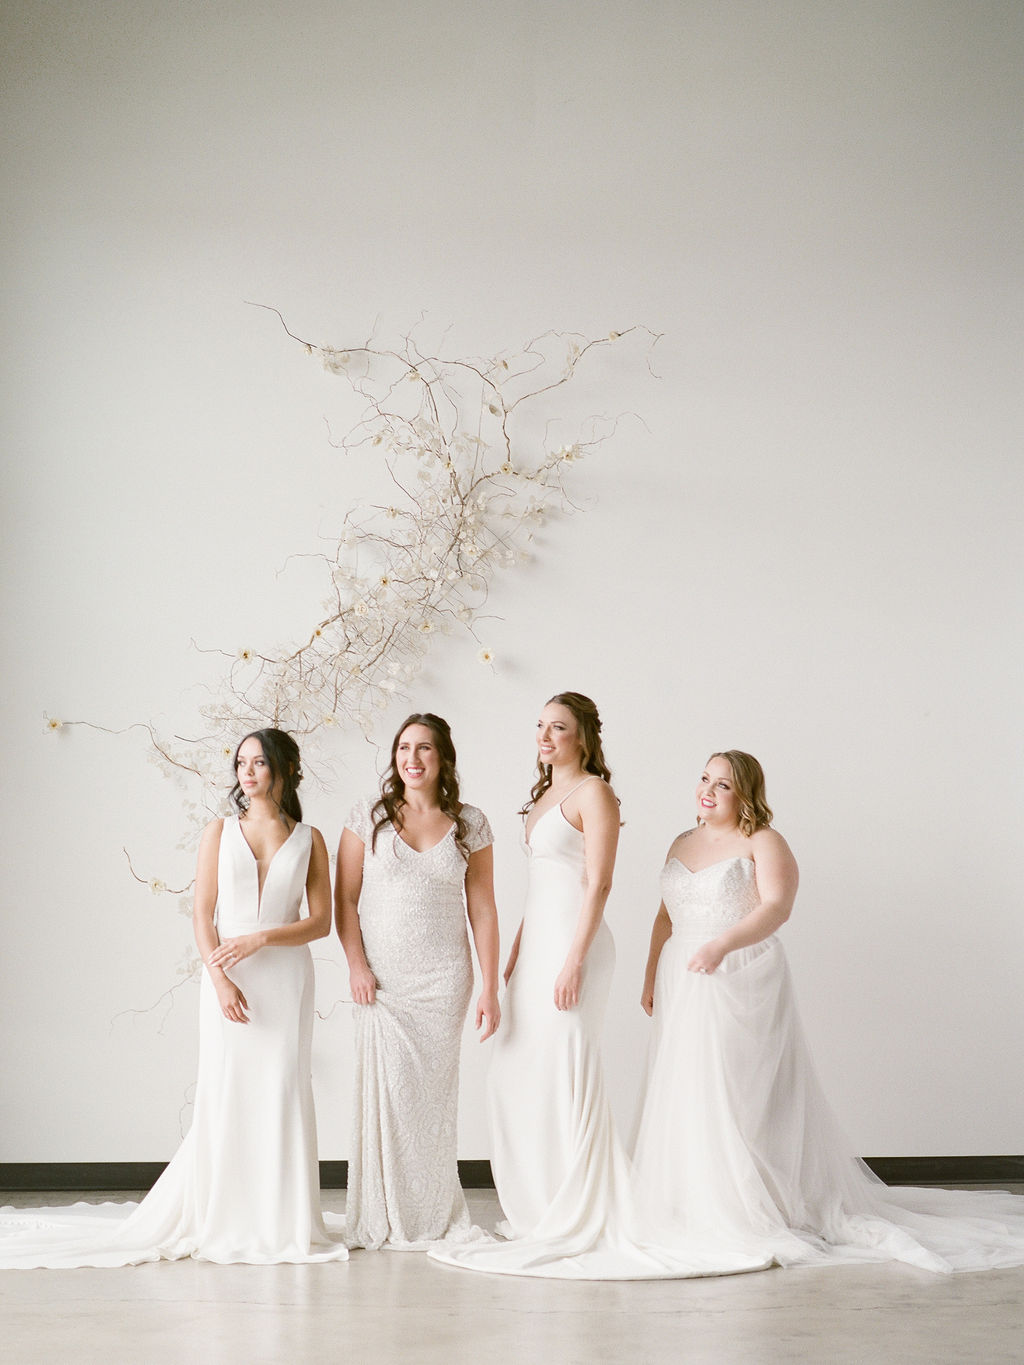 Group of brides spokane bridal shop